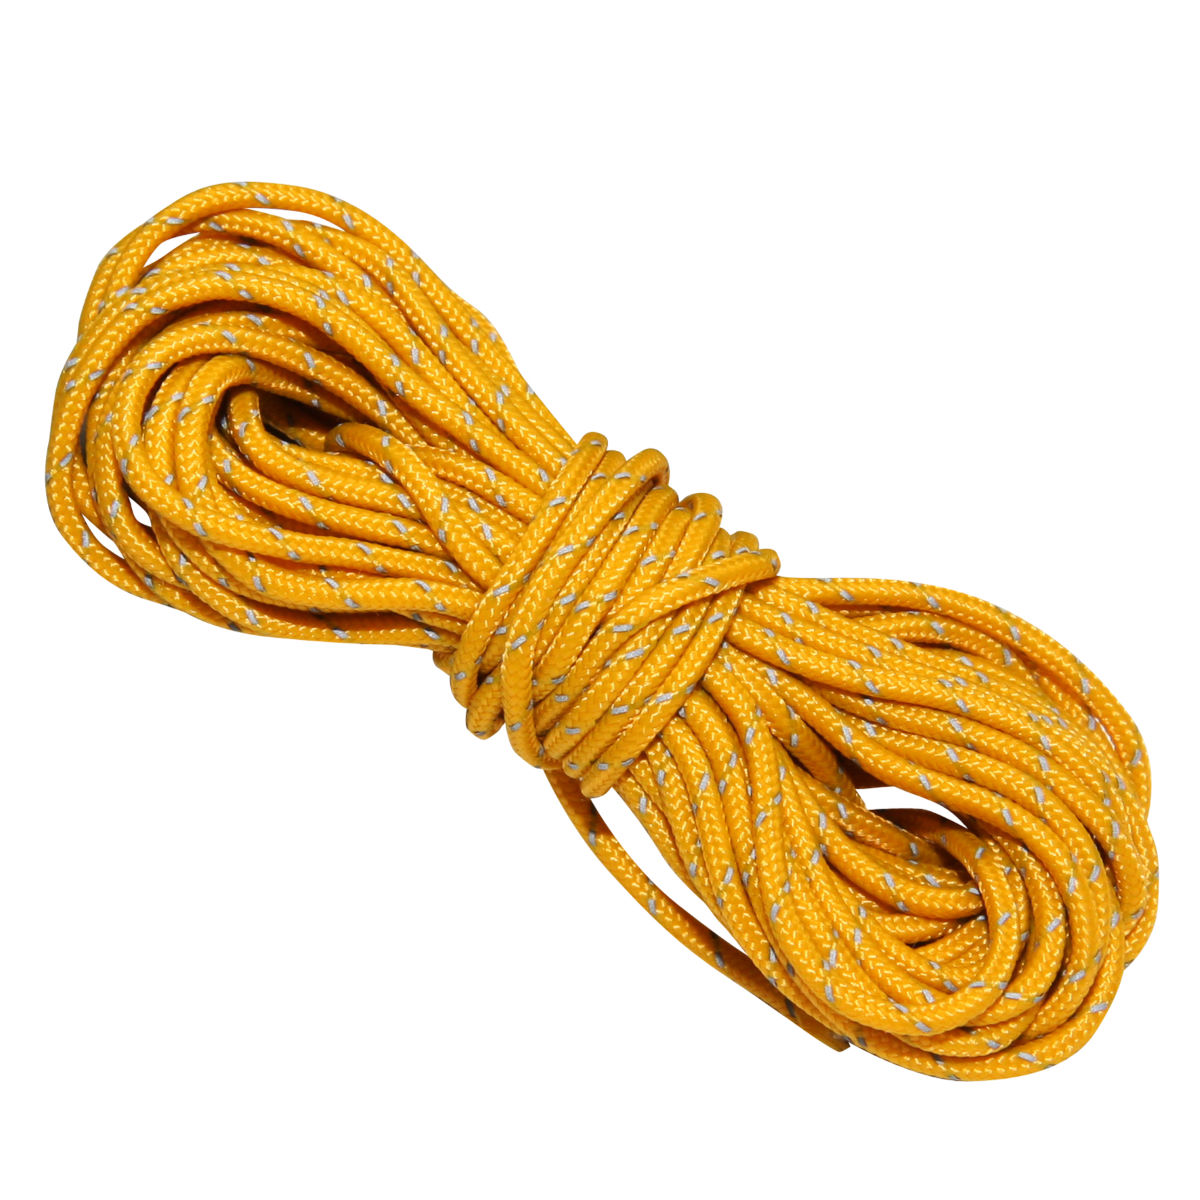 Nordisk Nordisk Dyneema 2.0mm Guy Rope   Ropes and Cords